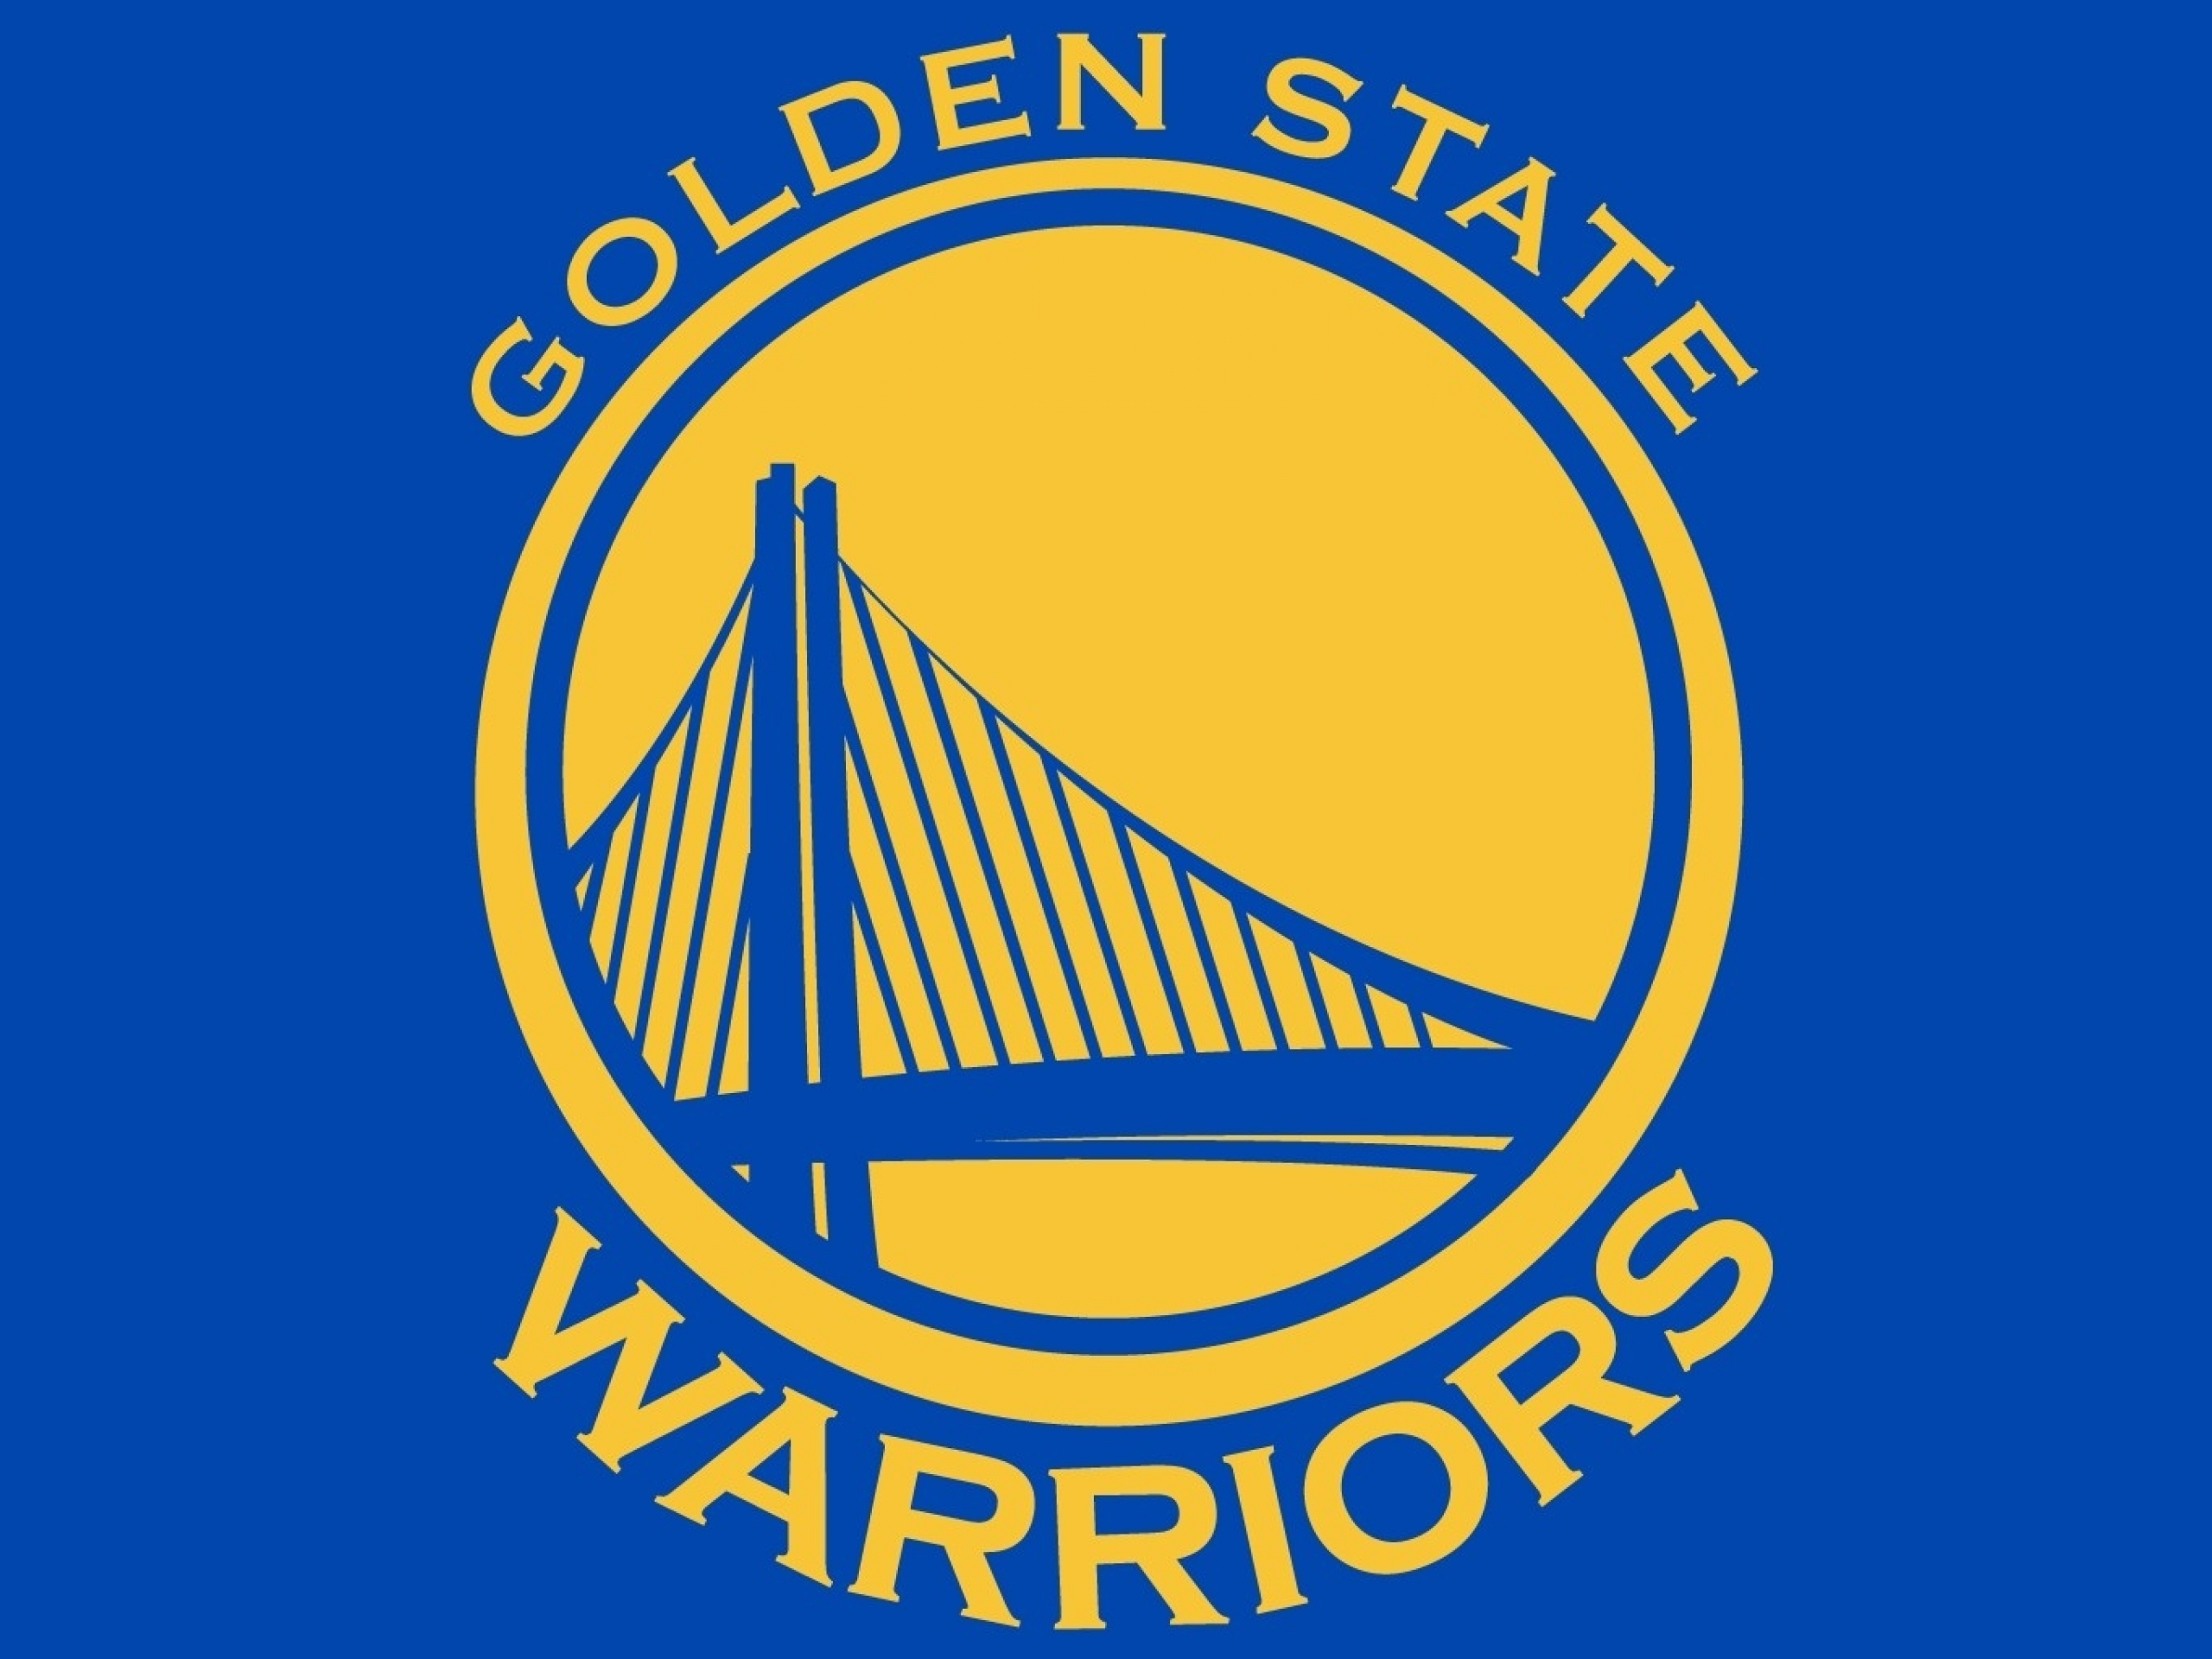 Golden State Logo Wallpaper Bellissimonyccom